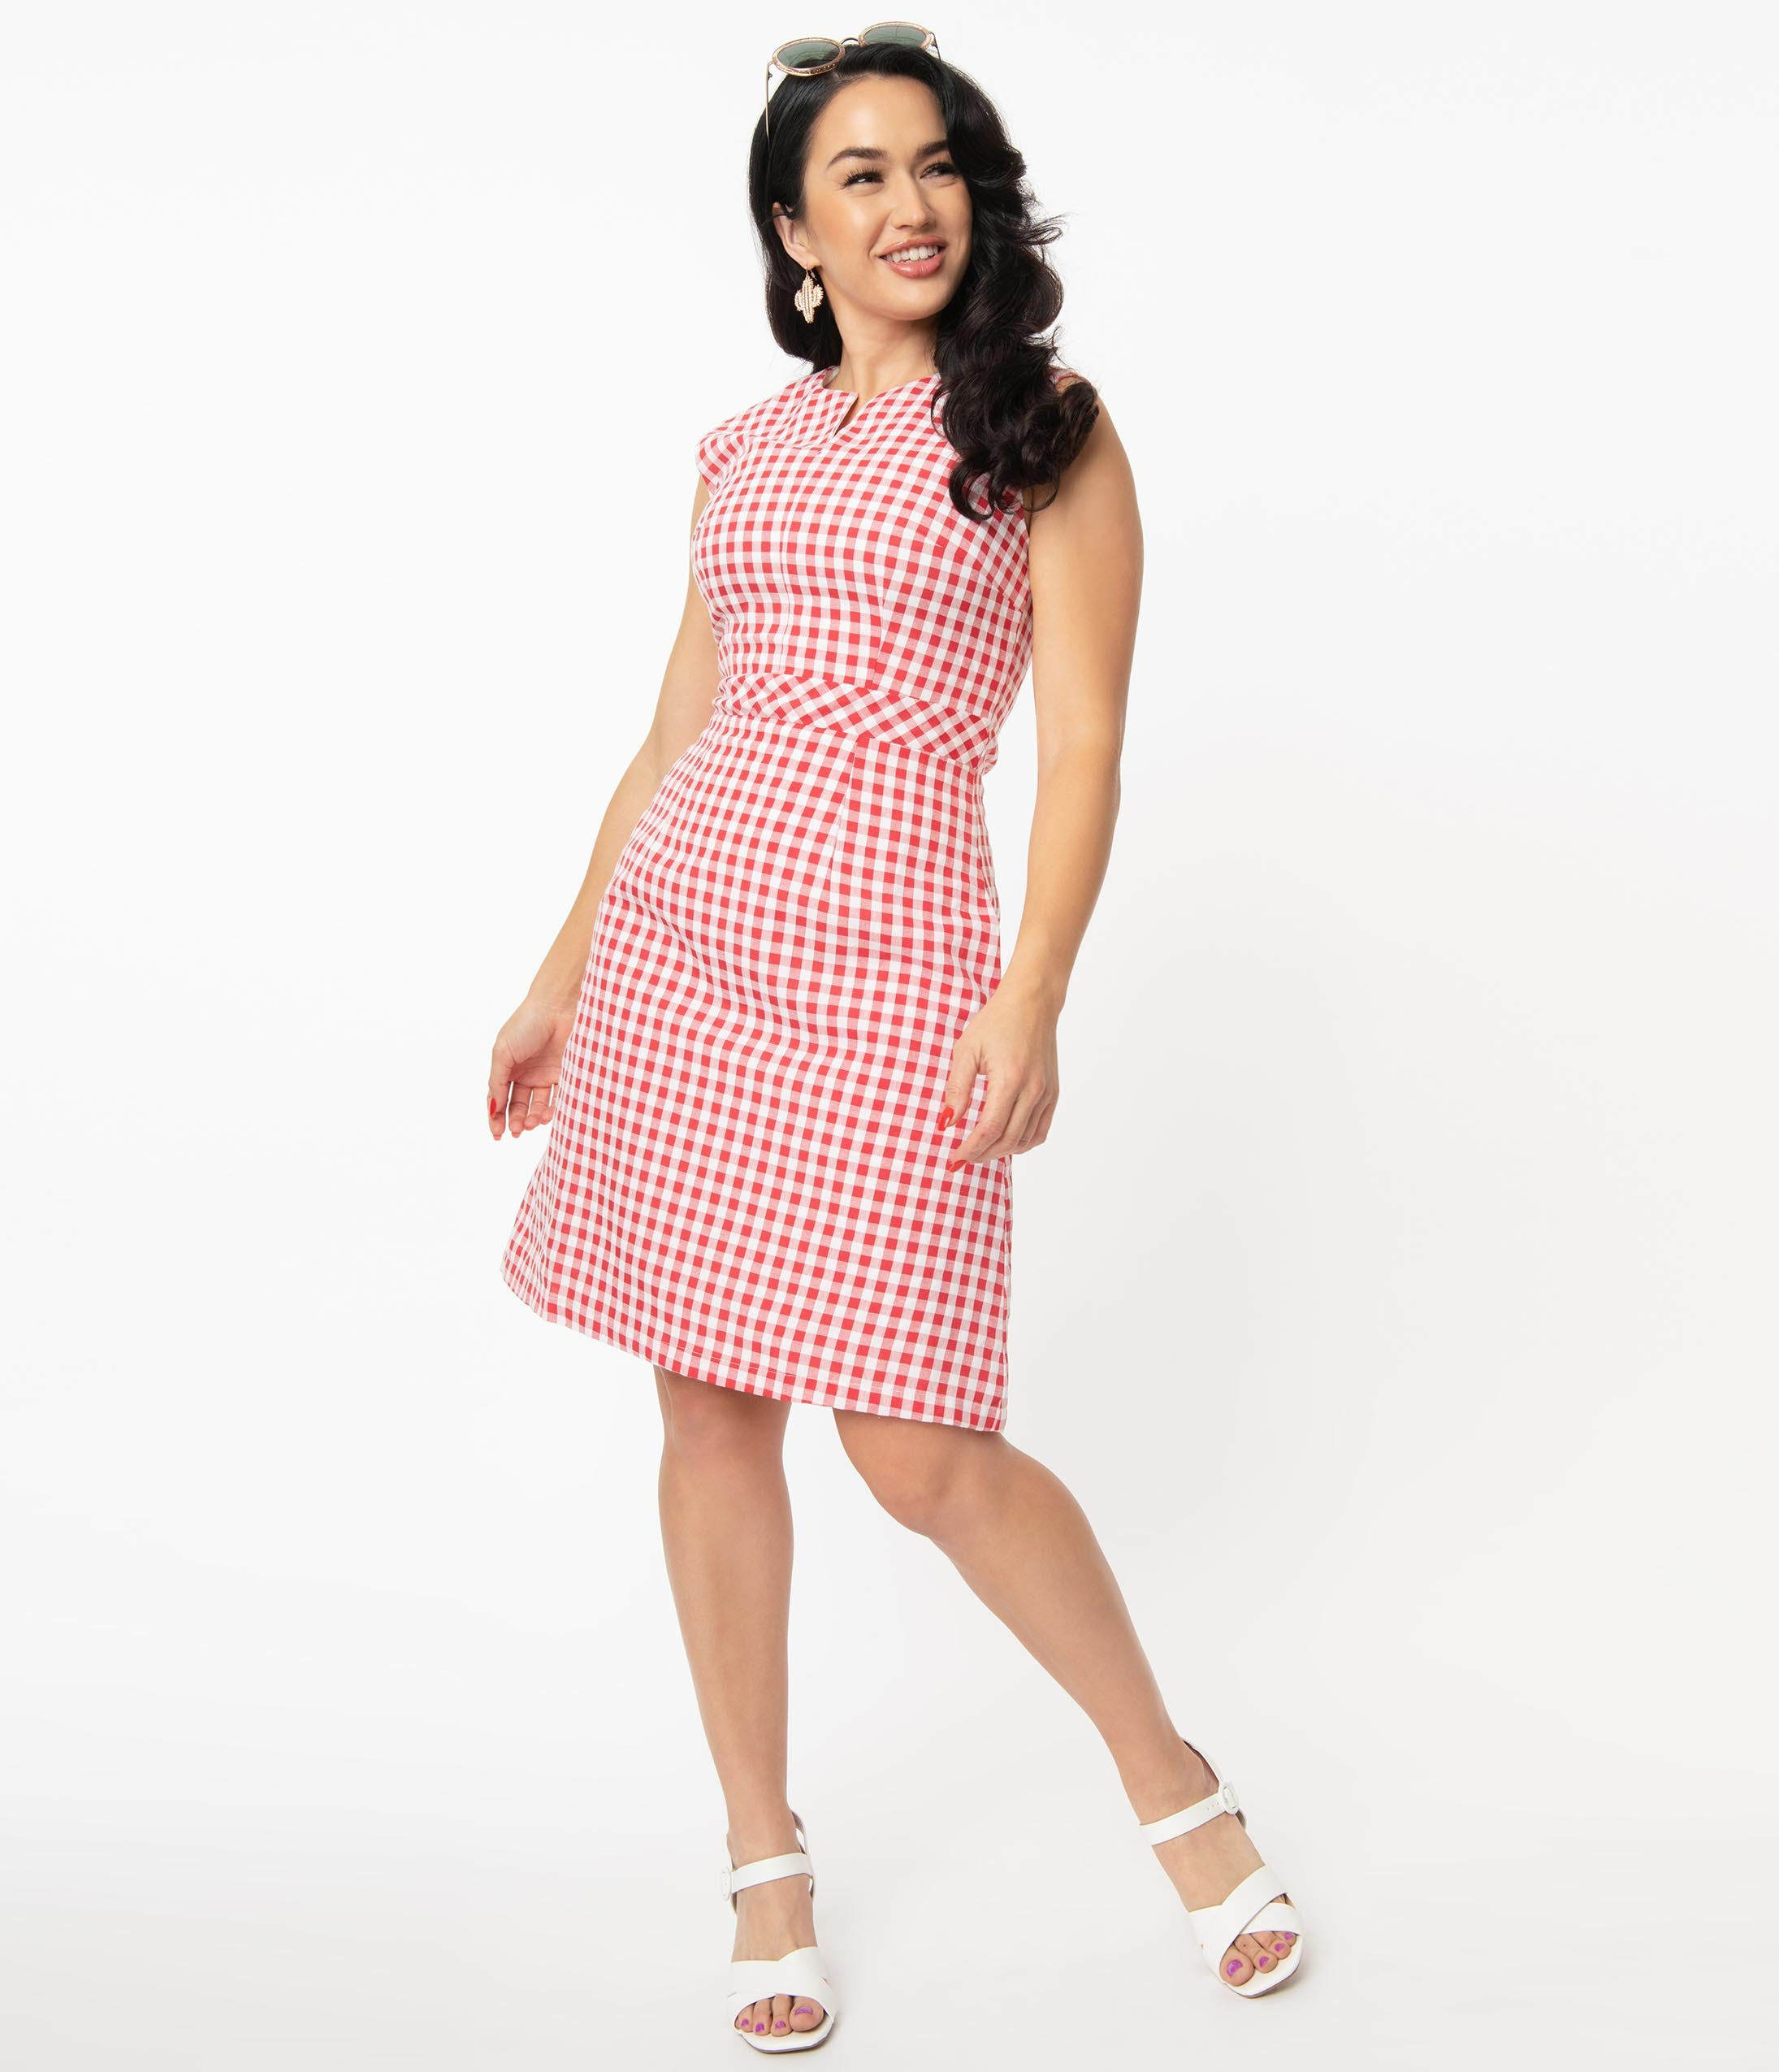 60s 70s Plus Size Dresses, Clothing, Costumes Magnolia Place Red  White Gingham Fit  Flare Dress $88.00 AT vintagedancer.com